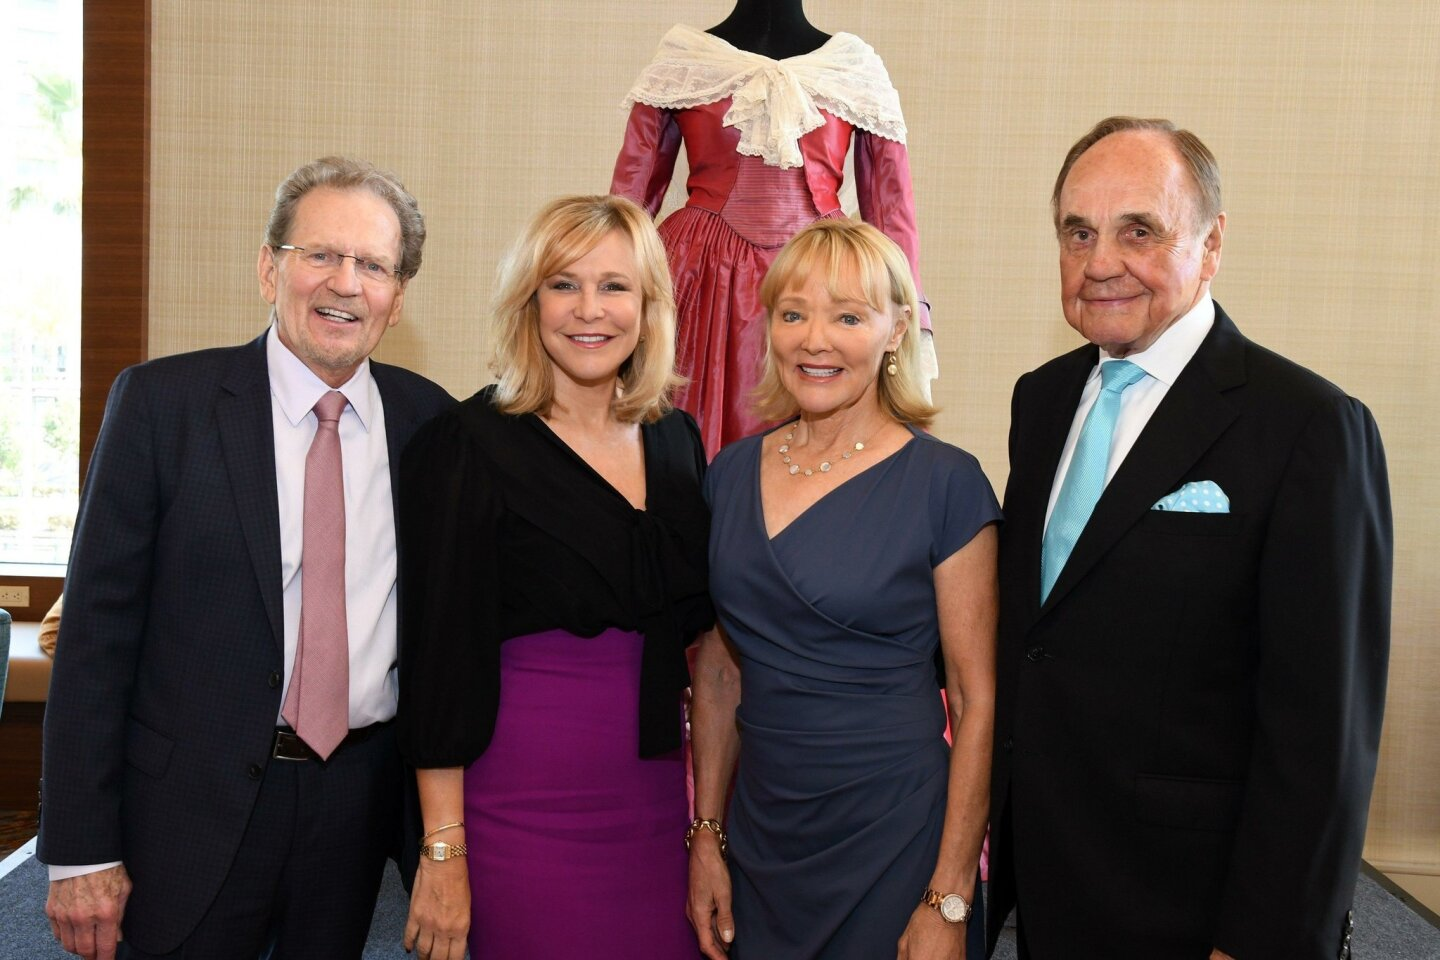 Honorary chairs: Robert and Stacey Foxworth, Barbara and Dick Enberg